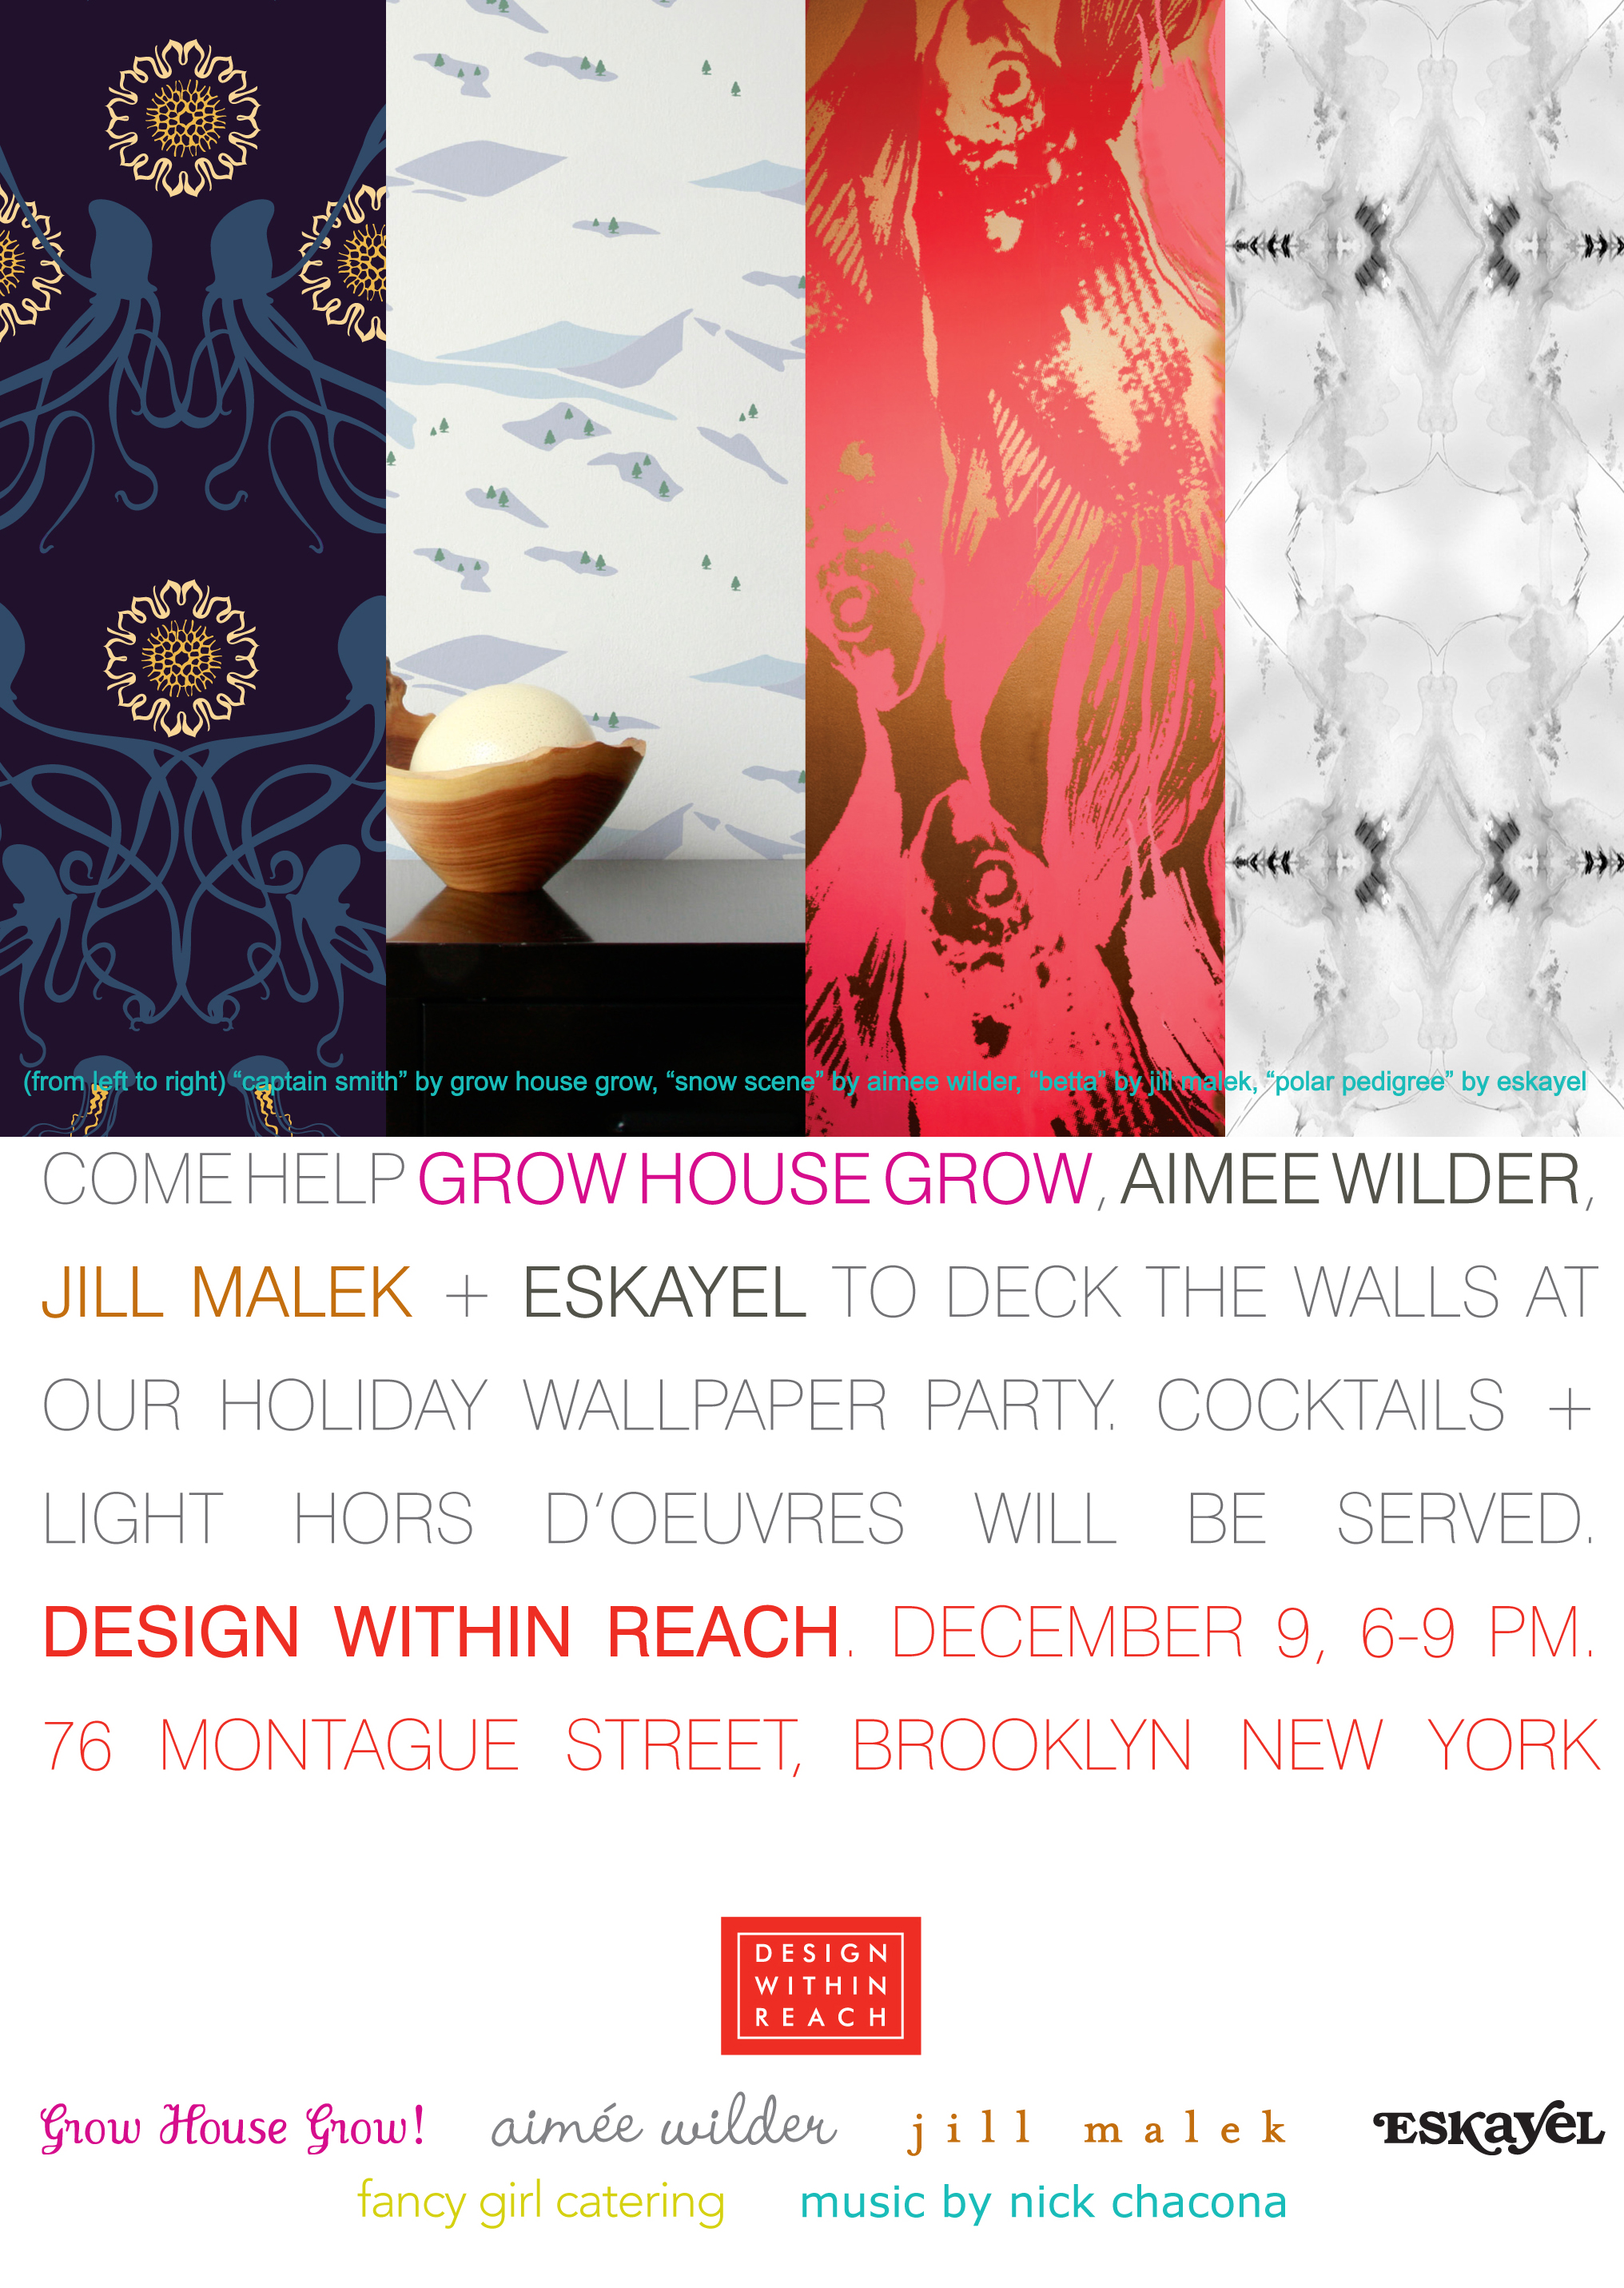 Jill Malek, Aimee Wilder, Eskayel, and Grow House Grow at Design Within Reach